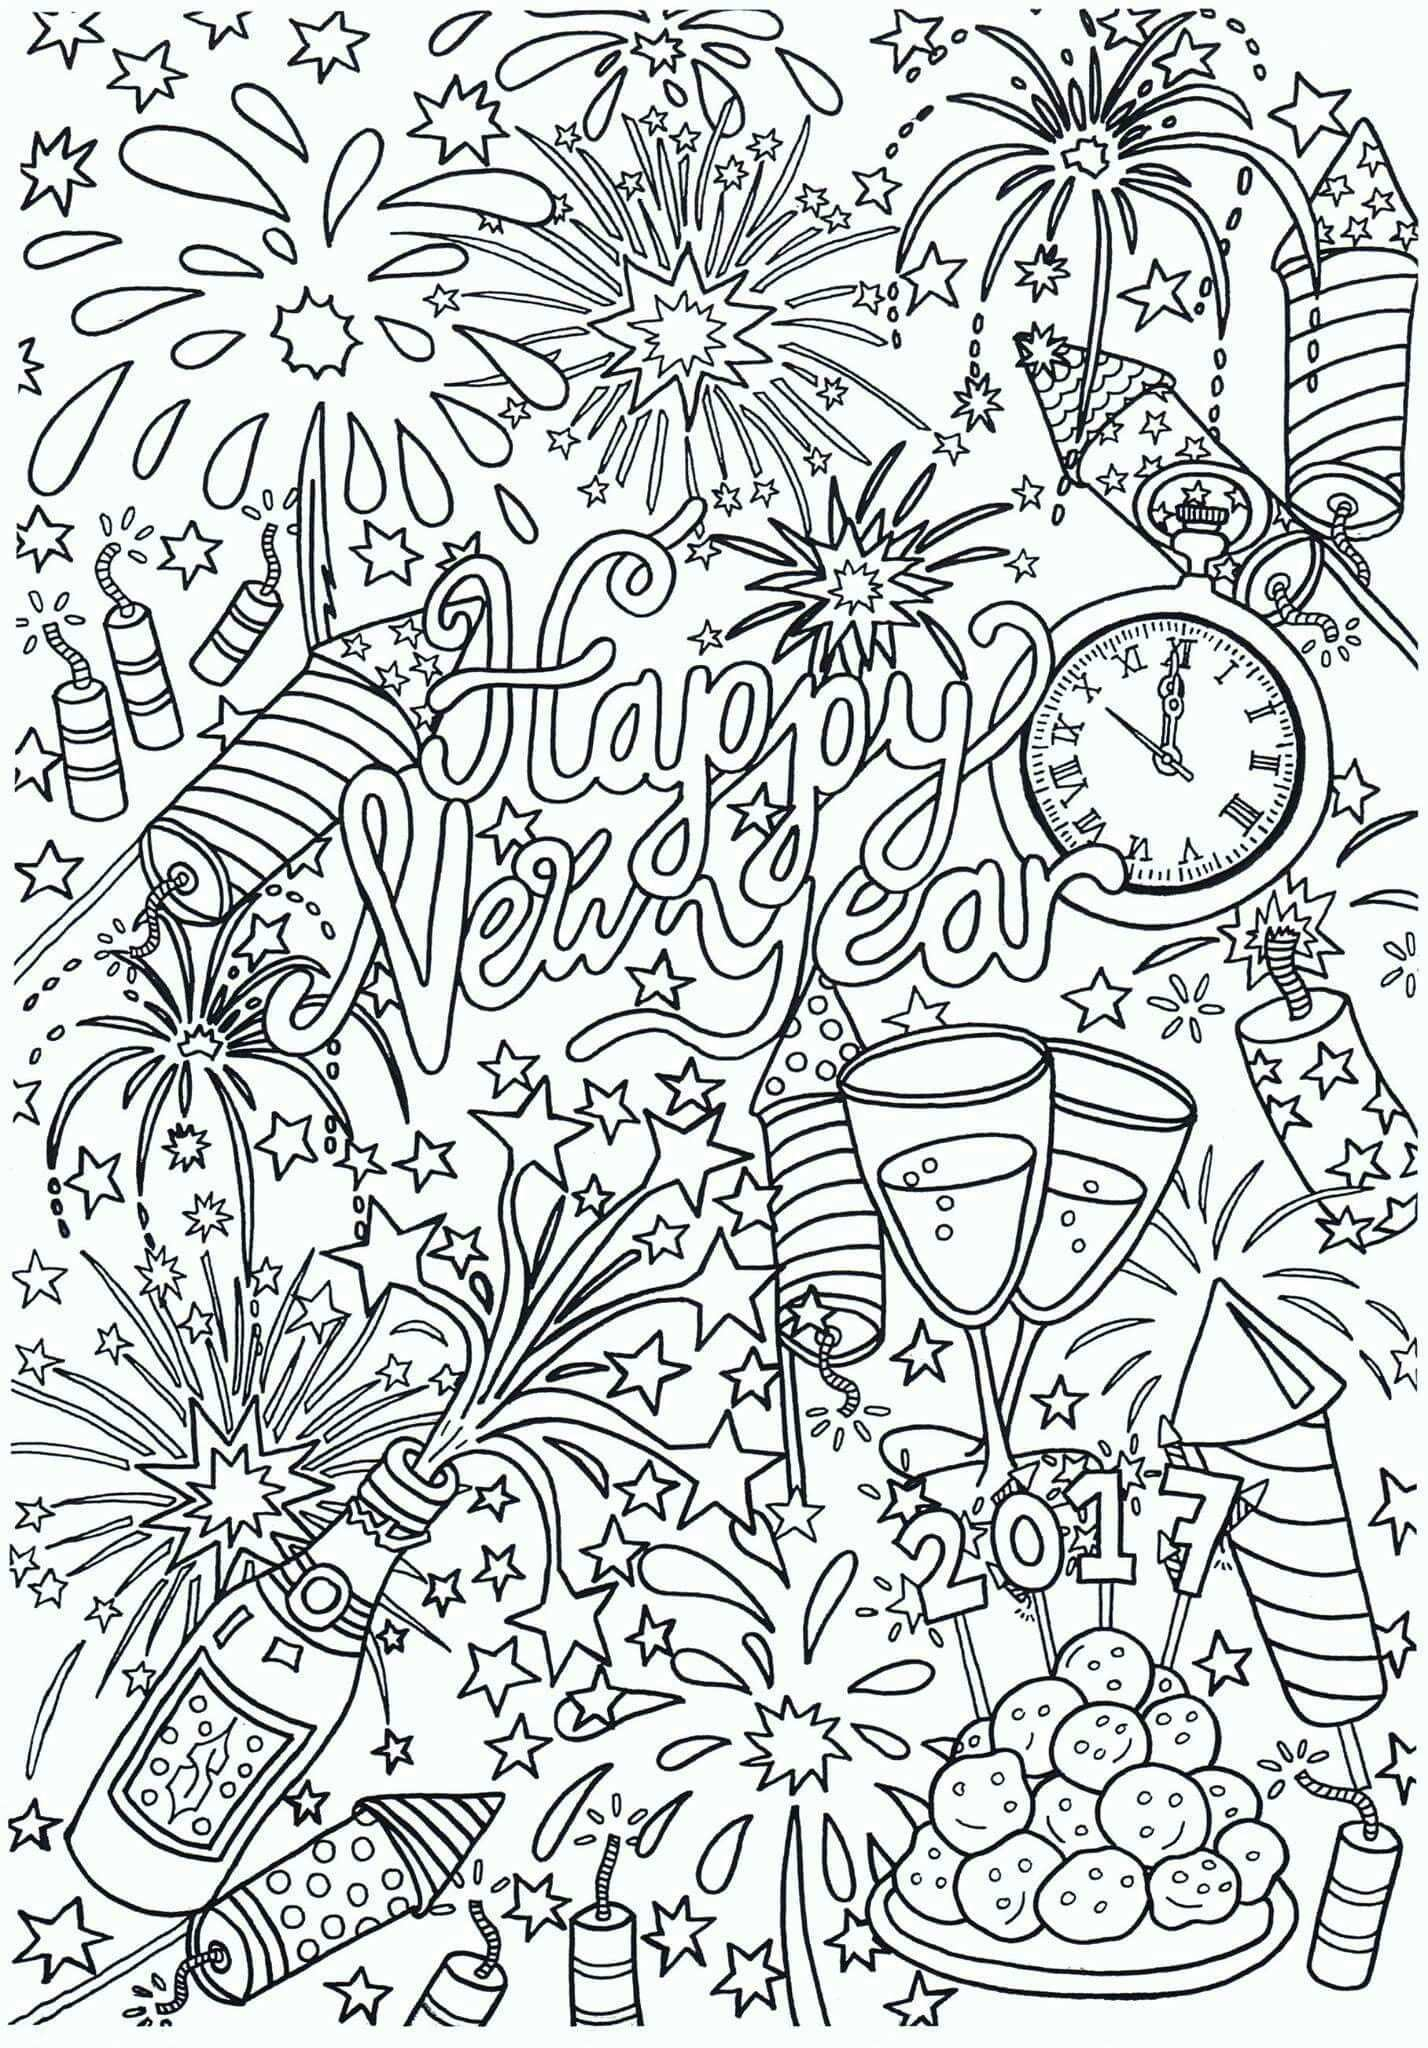 Happy New Year New Year Coloring Pages New Year S Eve Colors New Year Doodle